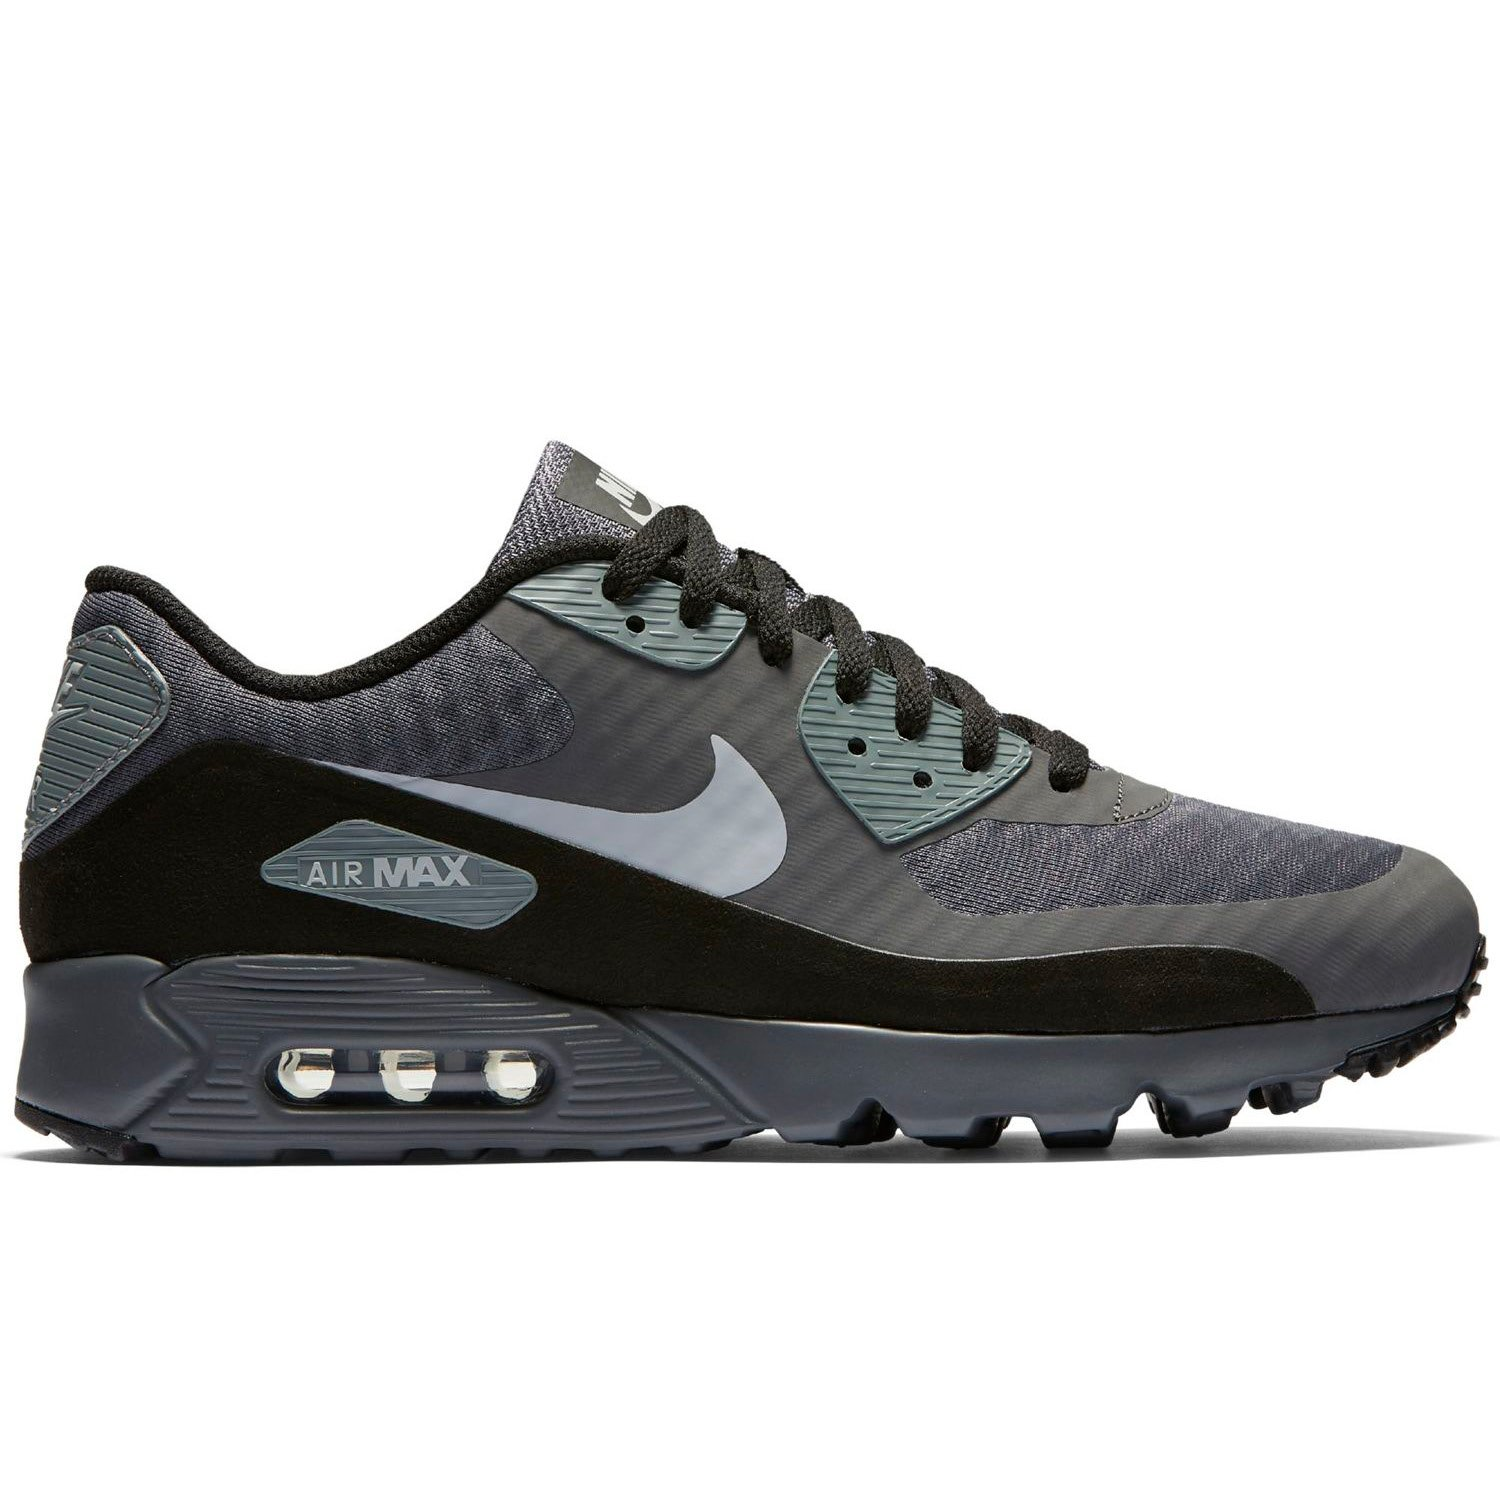 Nike Air Max 90 Ultra Essential Dark Grey 819474 011